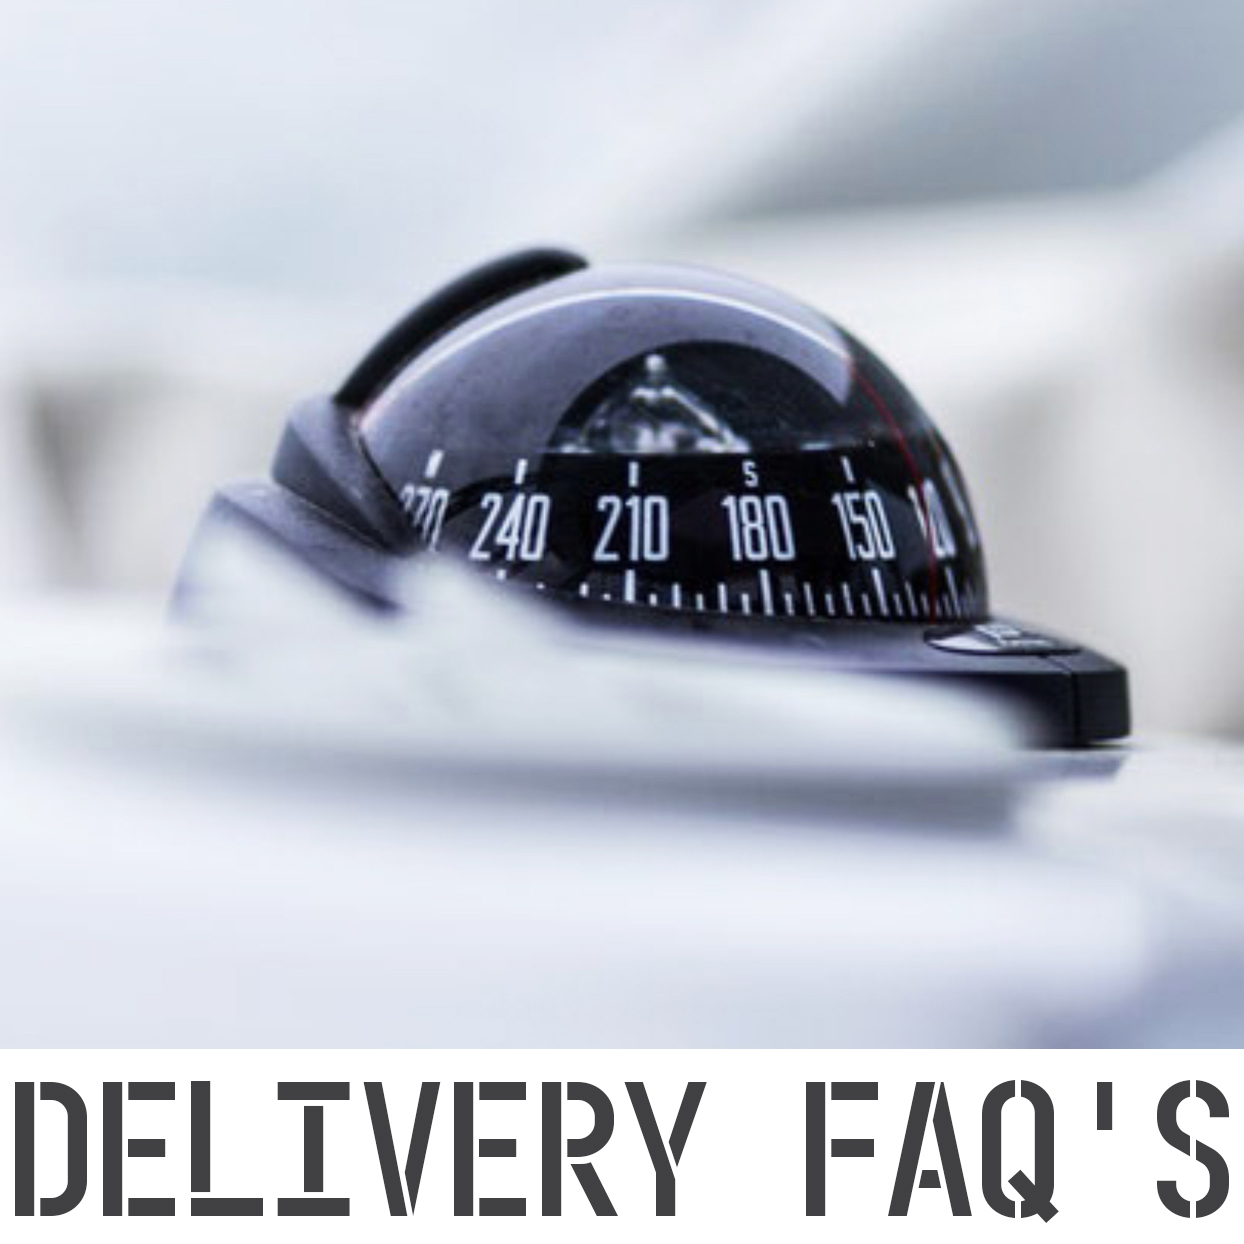 DELIVERY FAQs R.jpg